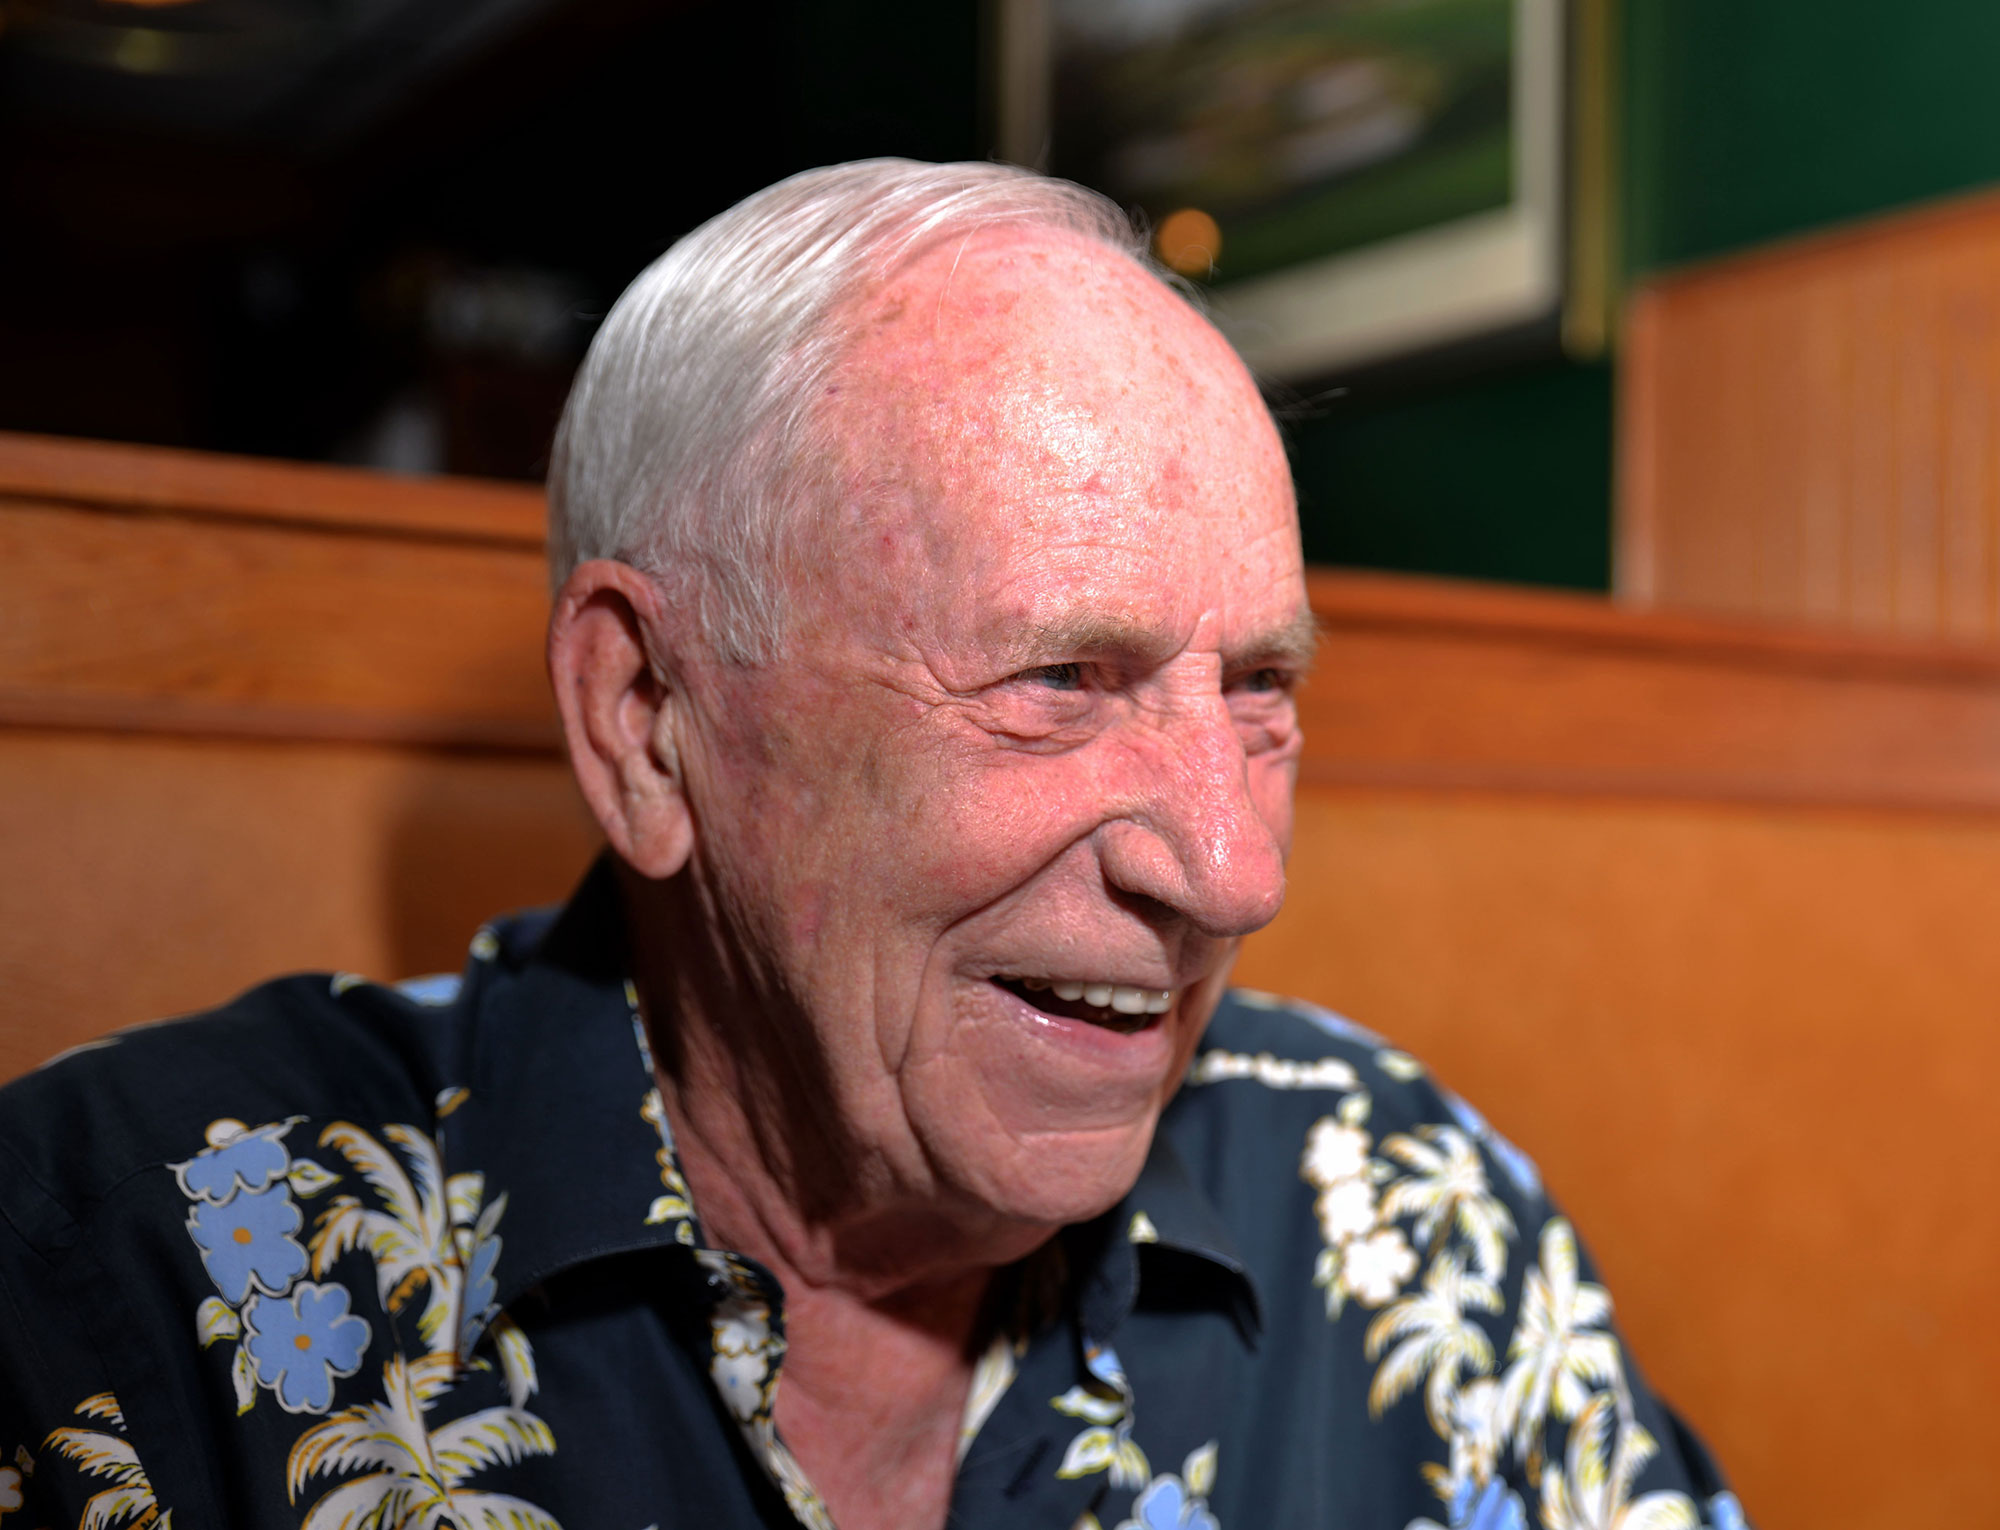 Al Worden enjoys a good Hawaiian print shirt almost as much as he loves a good laugh. Humor is a charming staple of his personality. Credit: Julian Leek